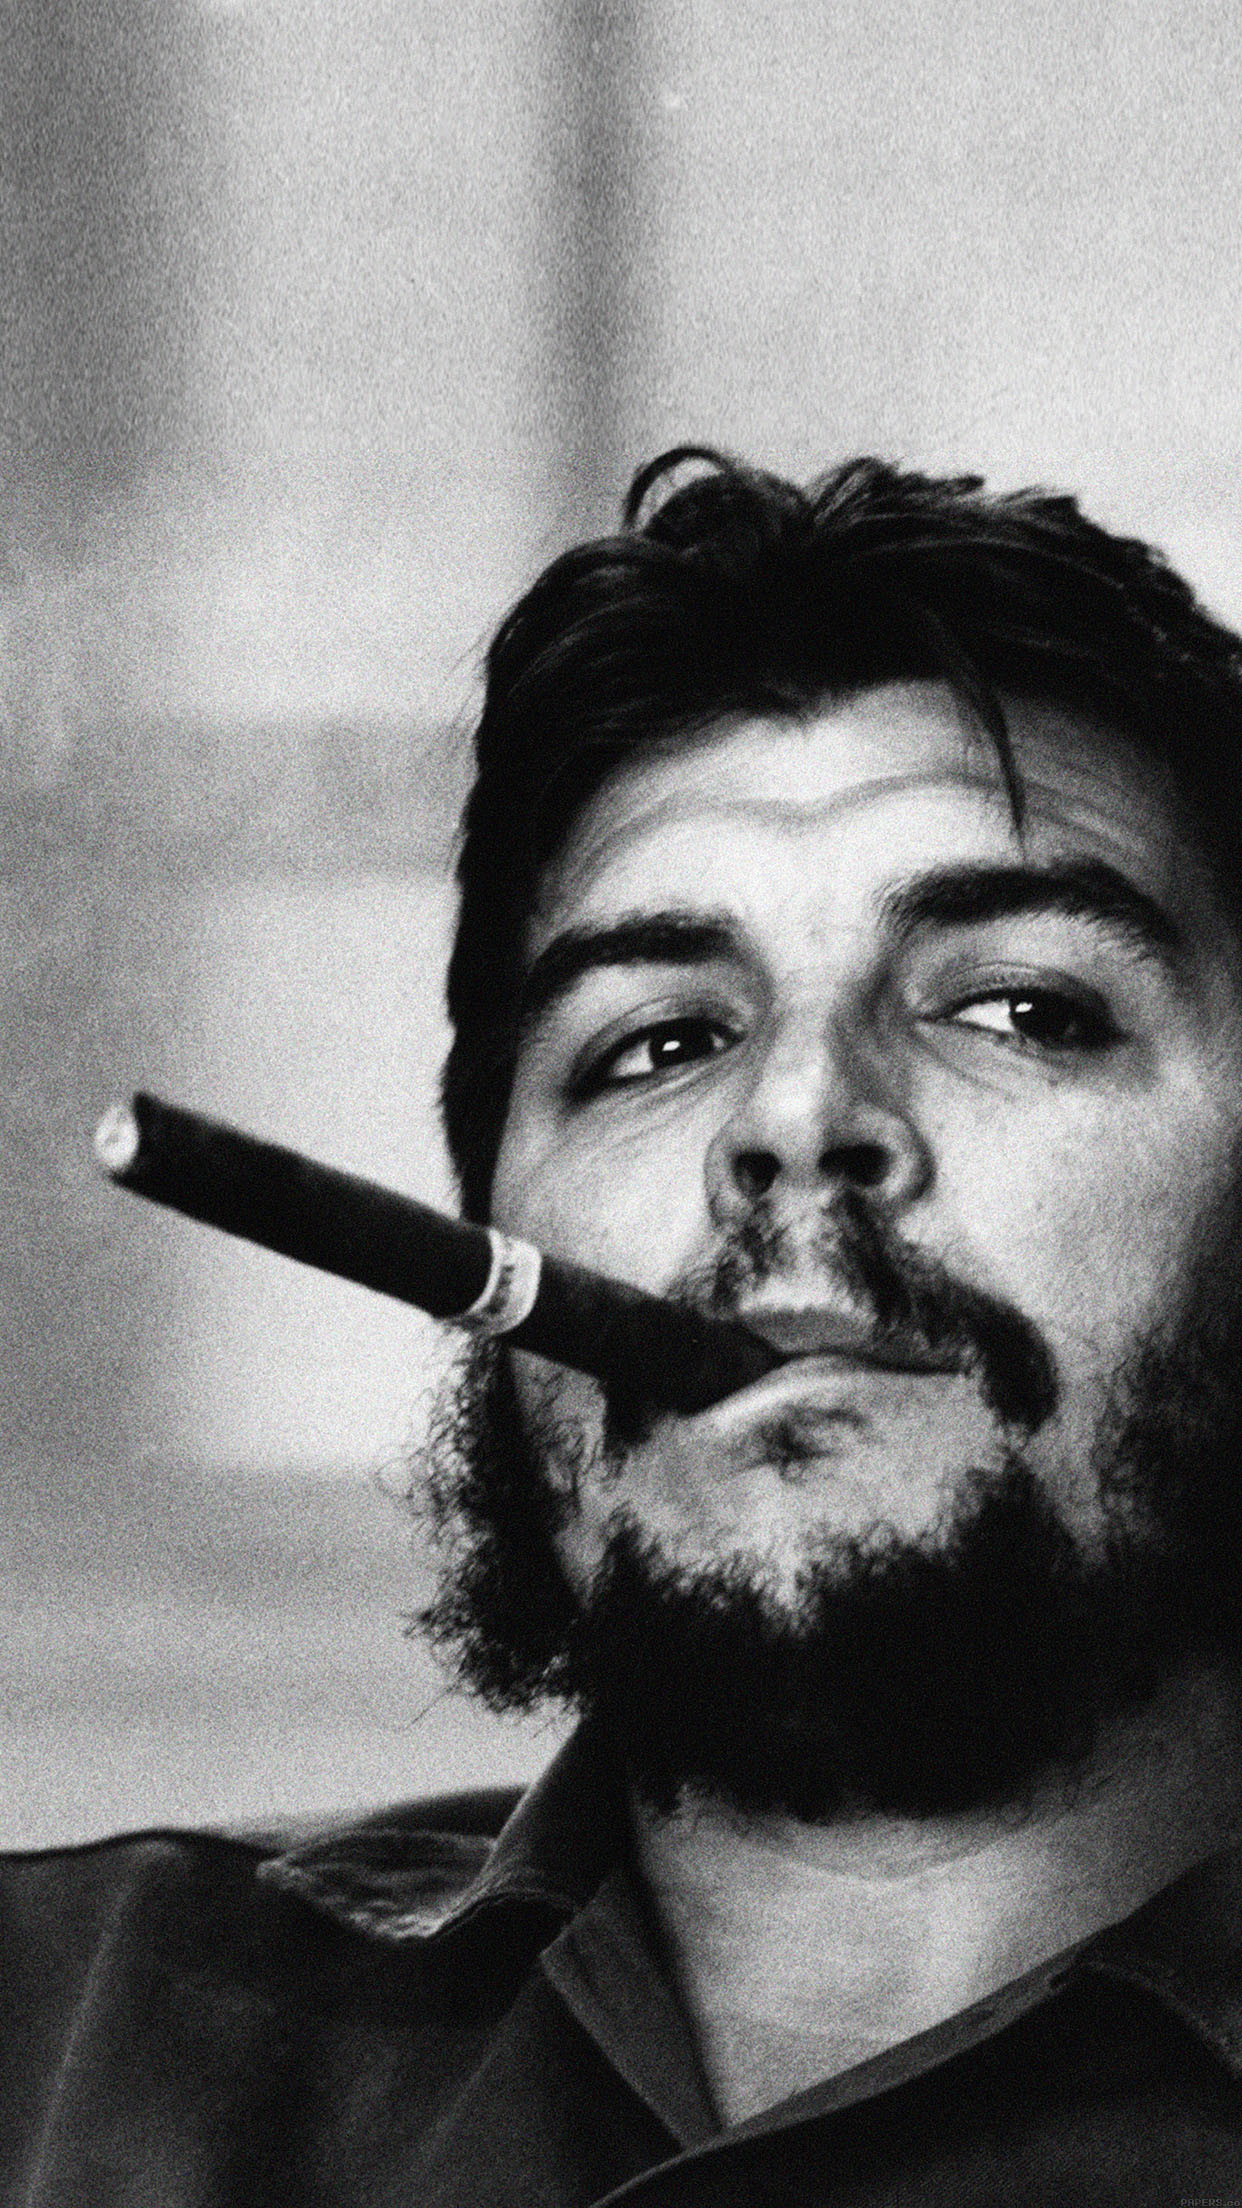 Photos: Ha79-wallpaper-che-guevara-face